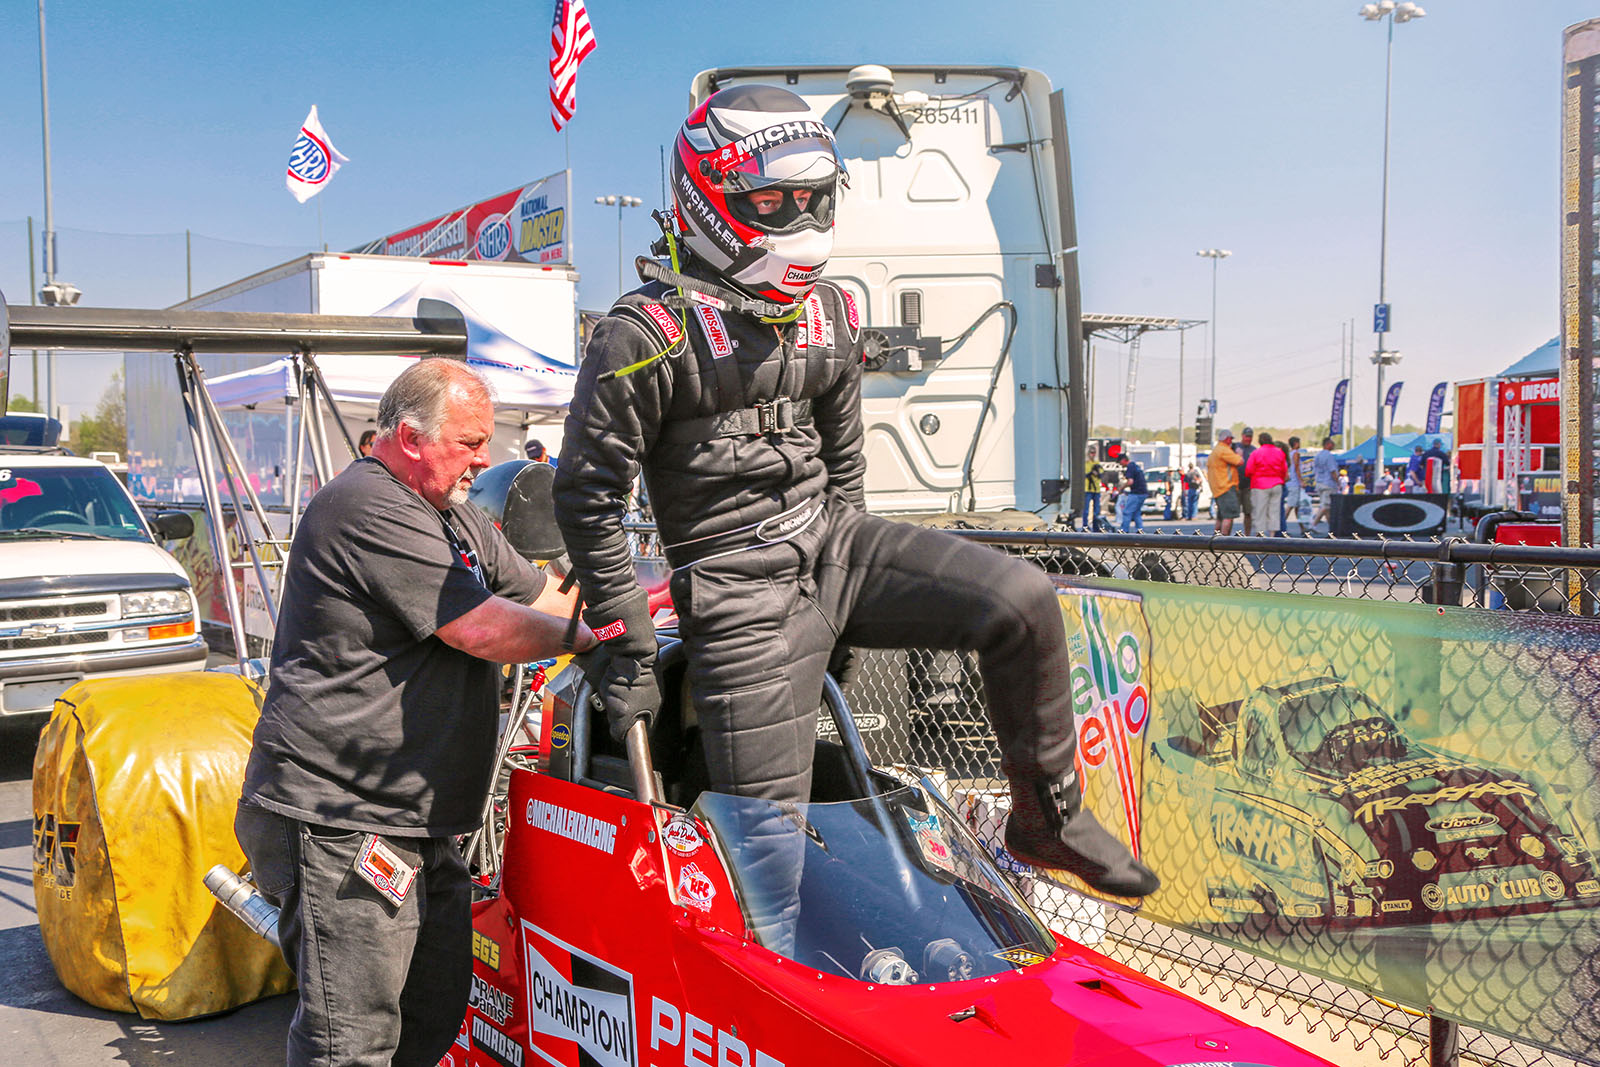 Corey Michalek climbs into the Champion Spark Plugs A/fuel dragster prior to the final round of qualifying at the 2014 NHRA Four Wide Nationals.